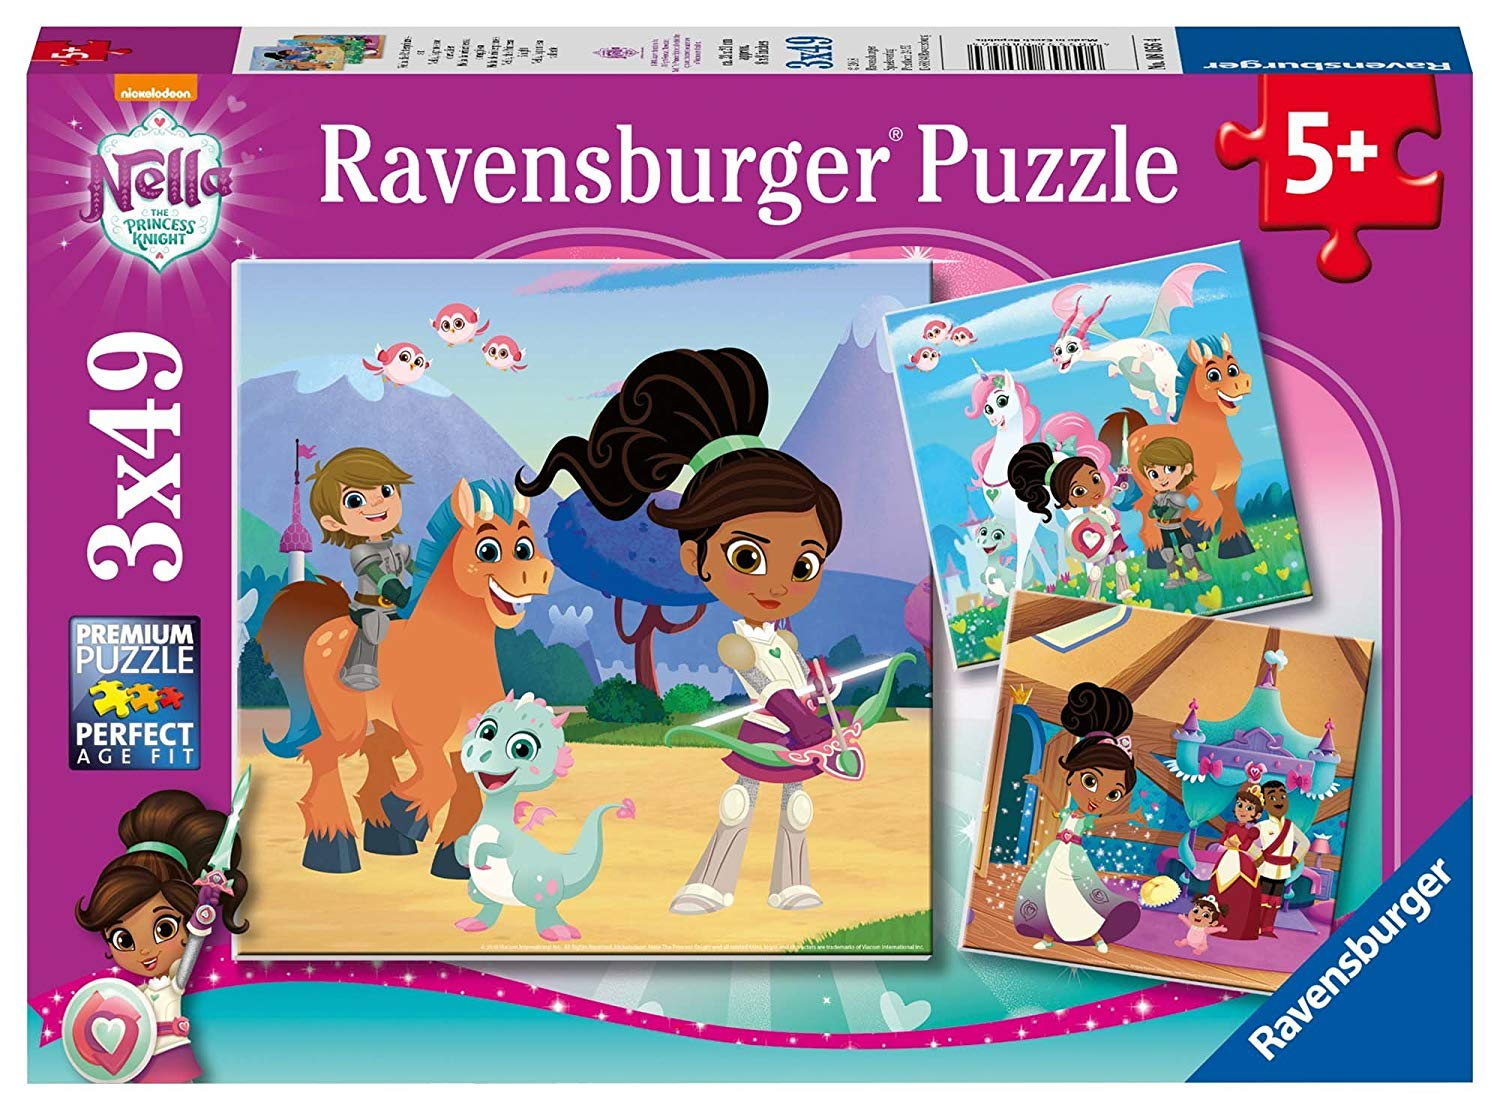 ravensburger-3-puzzles-nella-the-princess-knight-49-teile-puzzle-ravensburger-08056